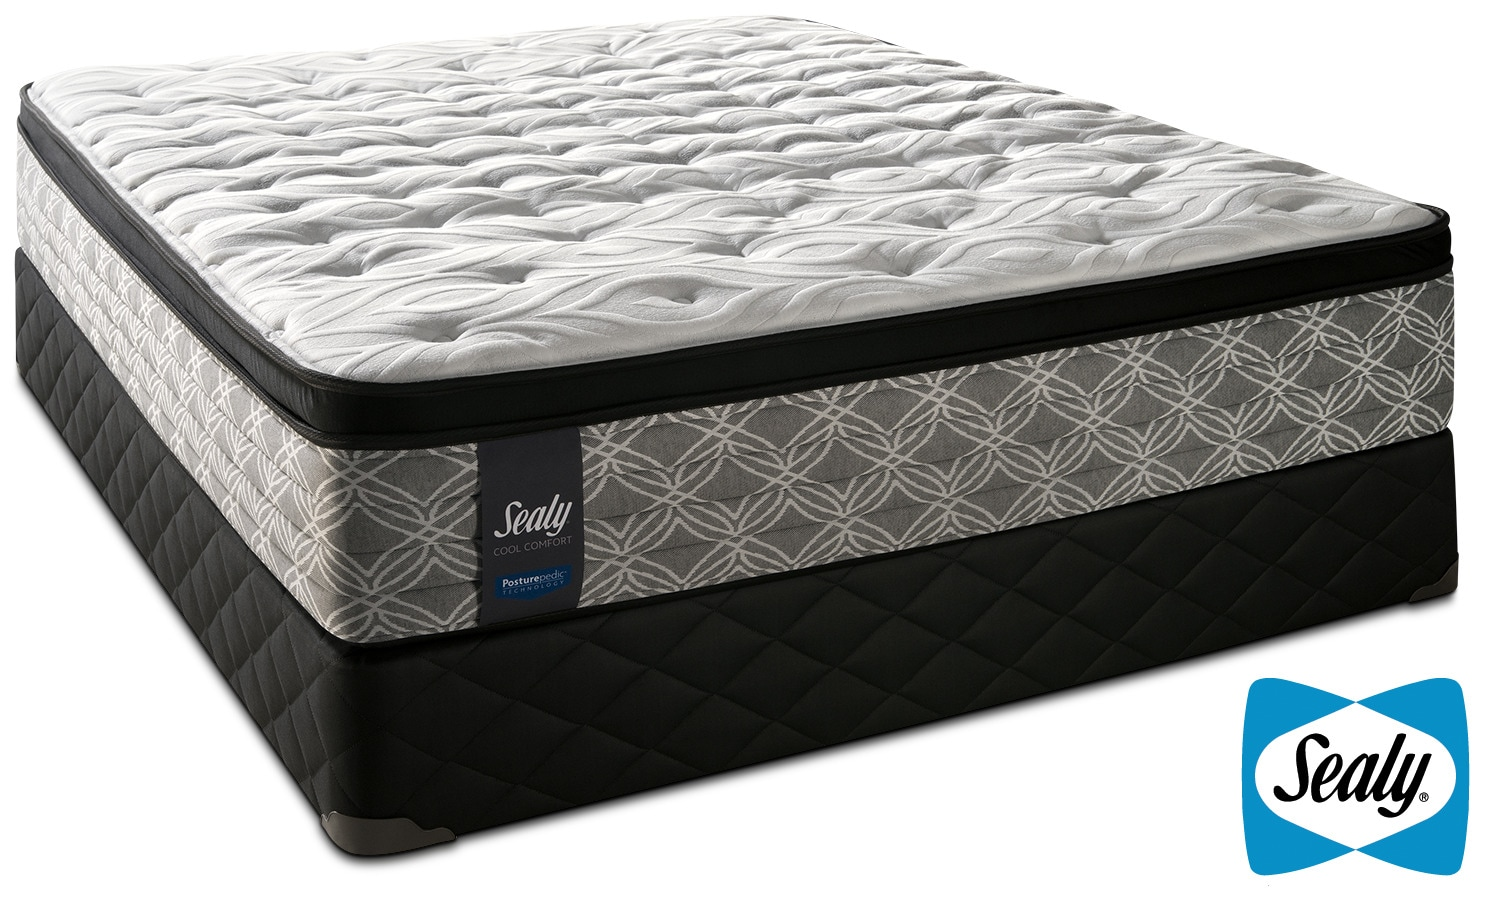 Mattresses and Bedding - Sealy Super Nova Cushion Firm Queen Mattress and Boxspring Set